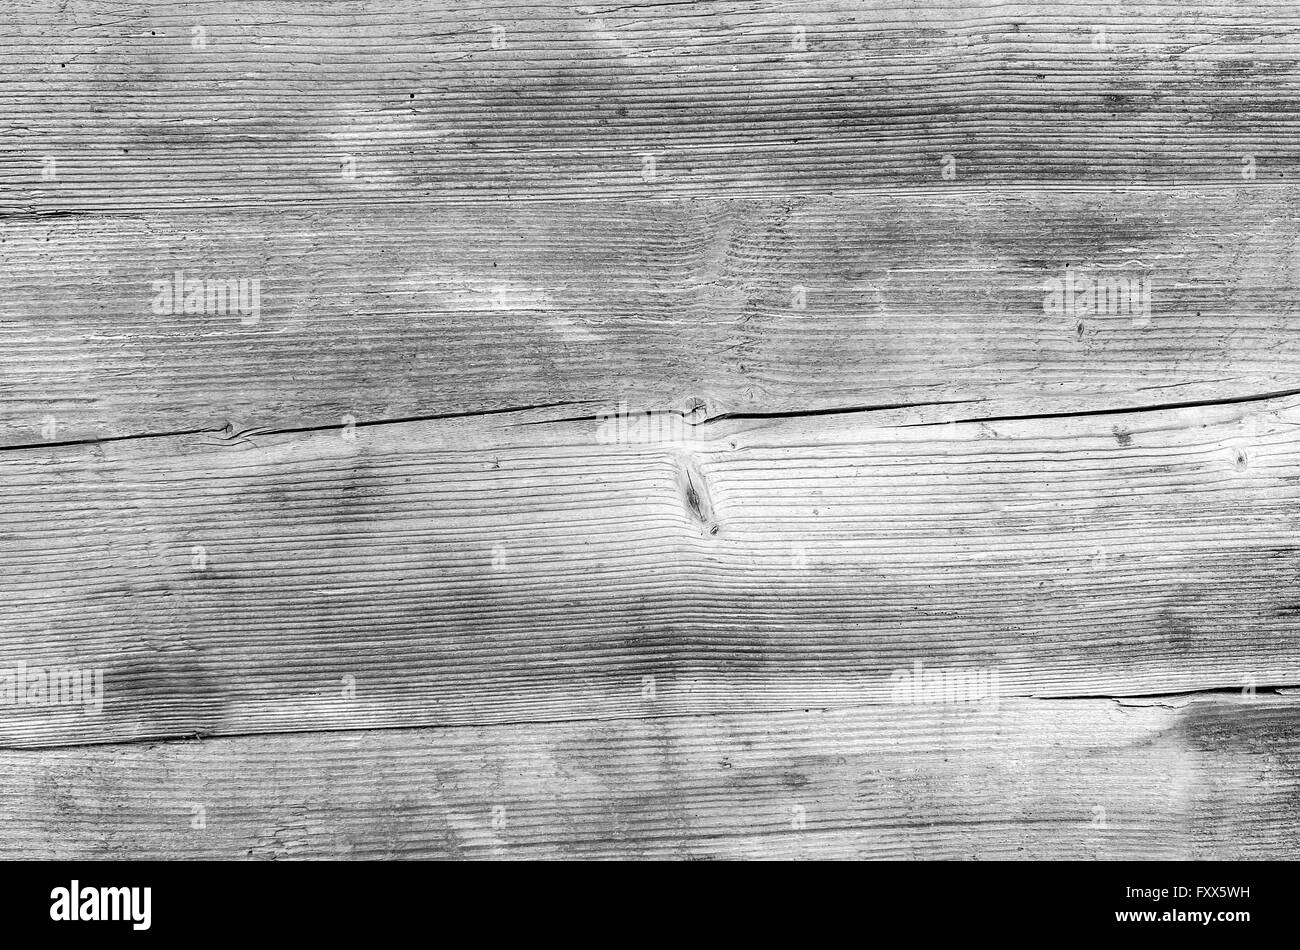 Texture of old wooden planks. Place for placing of your text. - Stock Image